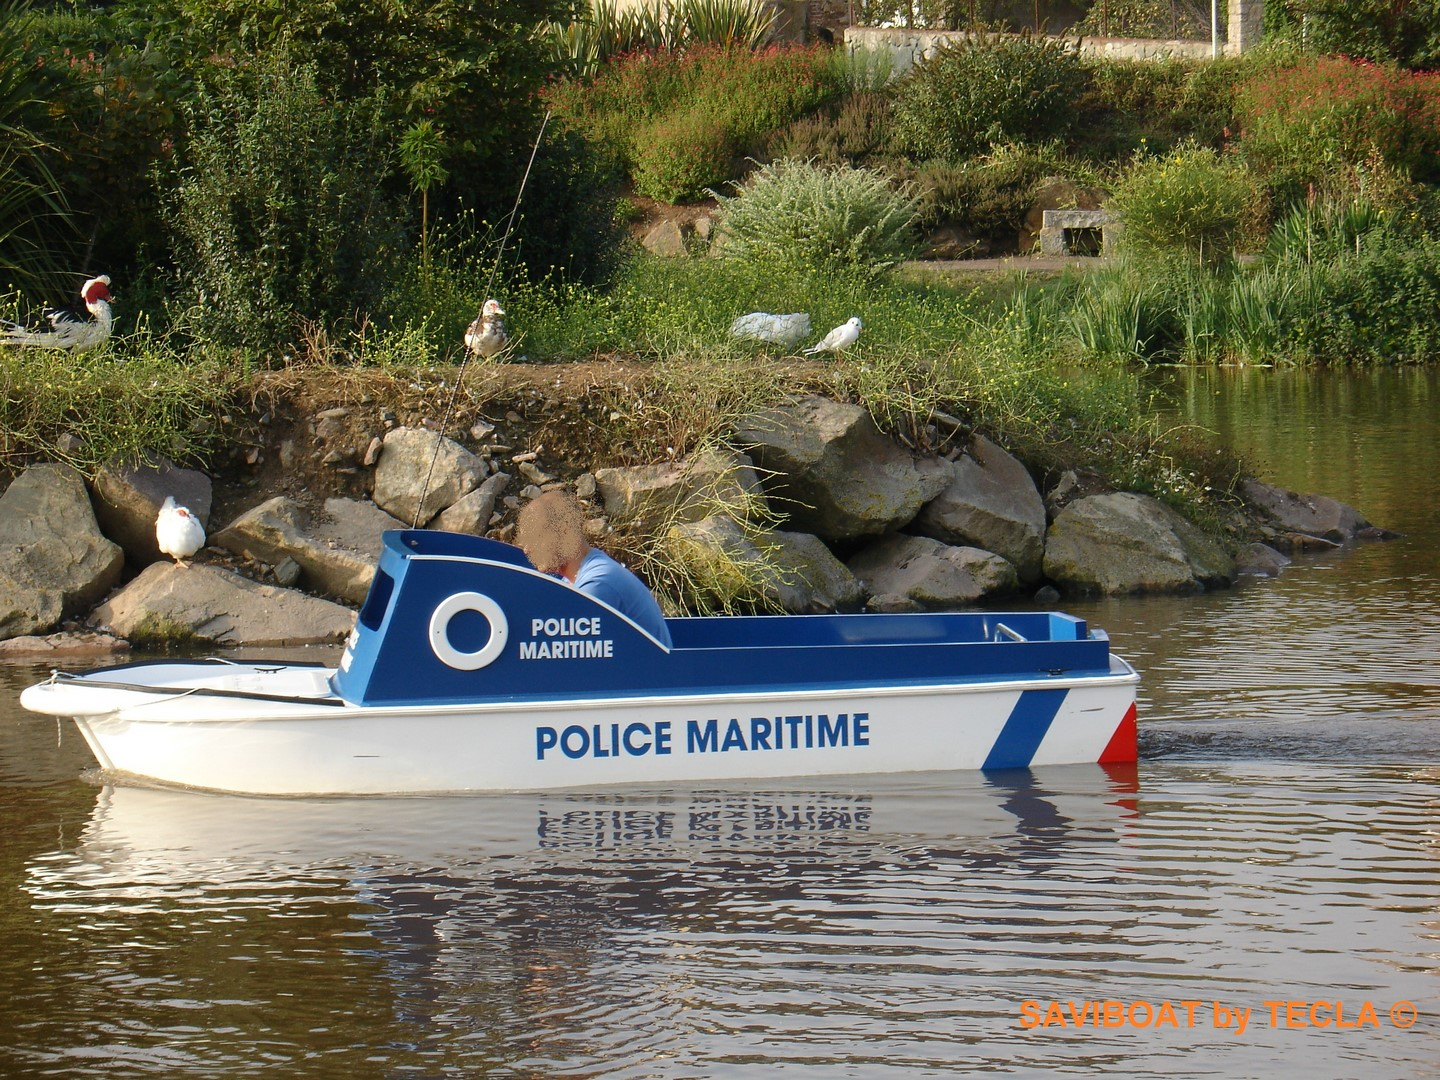 Saviboat Port Miniature Police